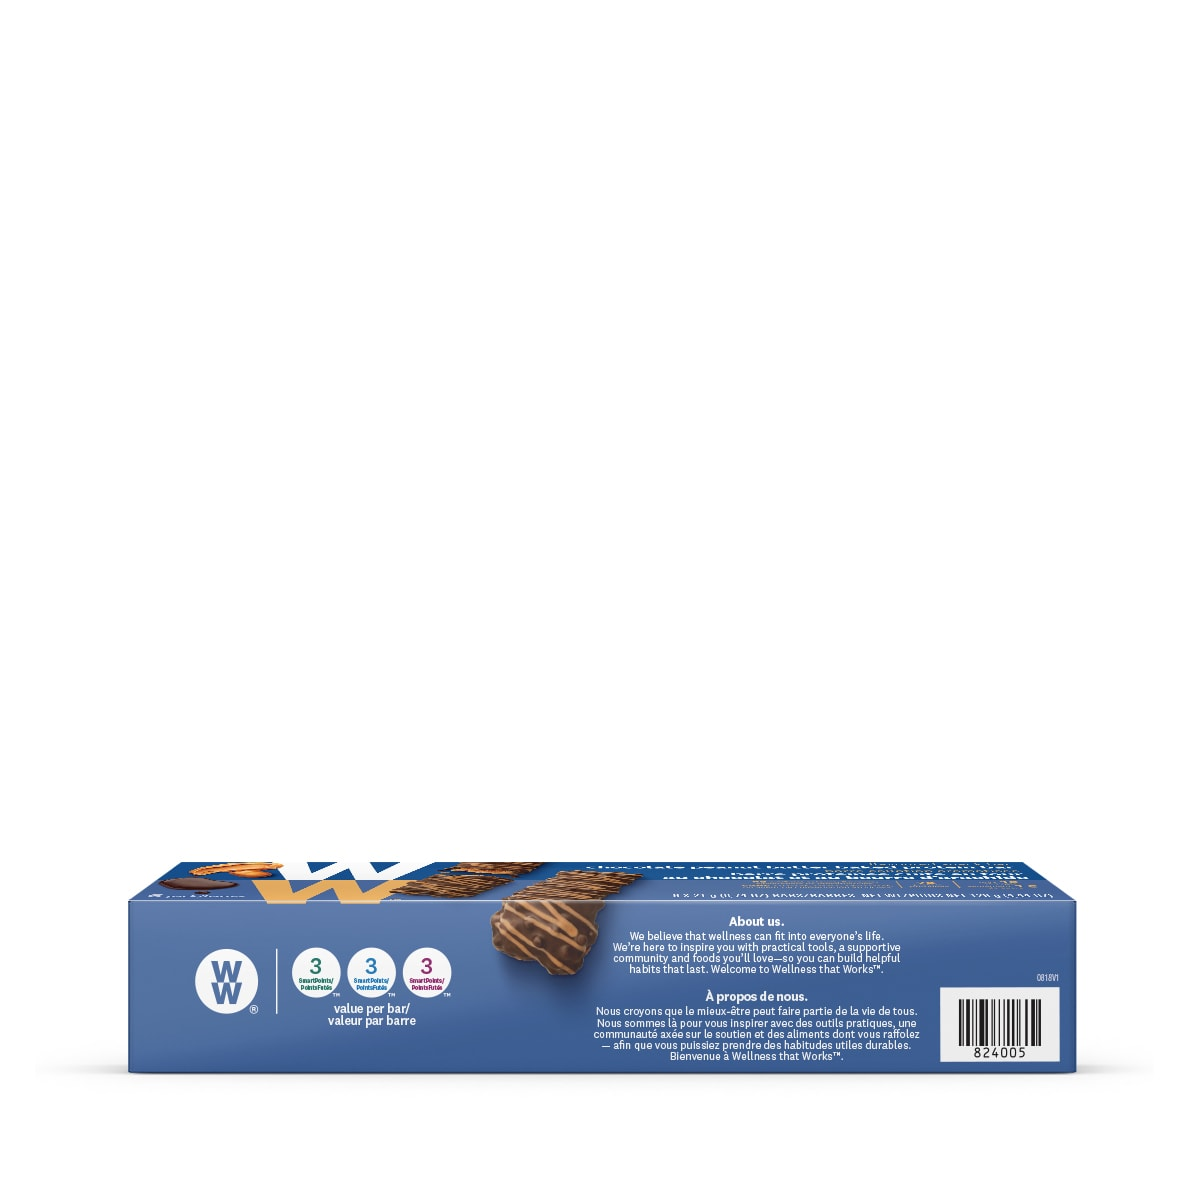 Chocolate Peanut Butter Baked Protein Bar - side 2 of the box